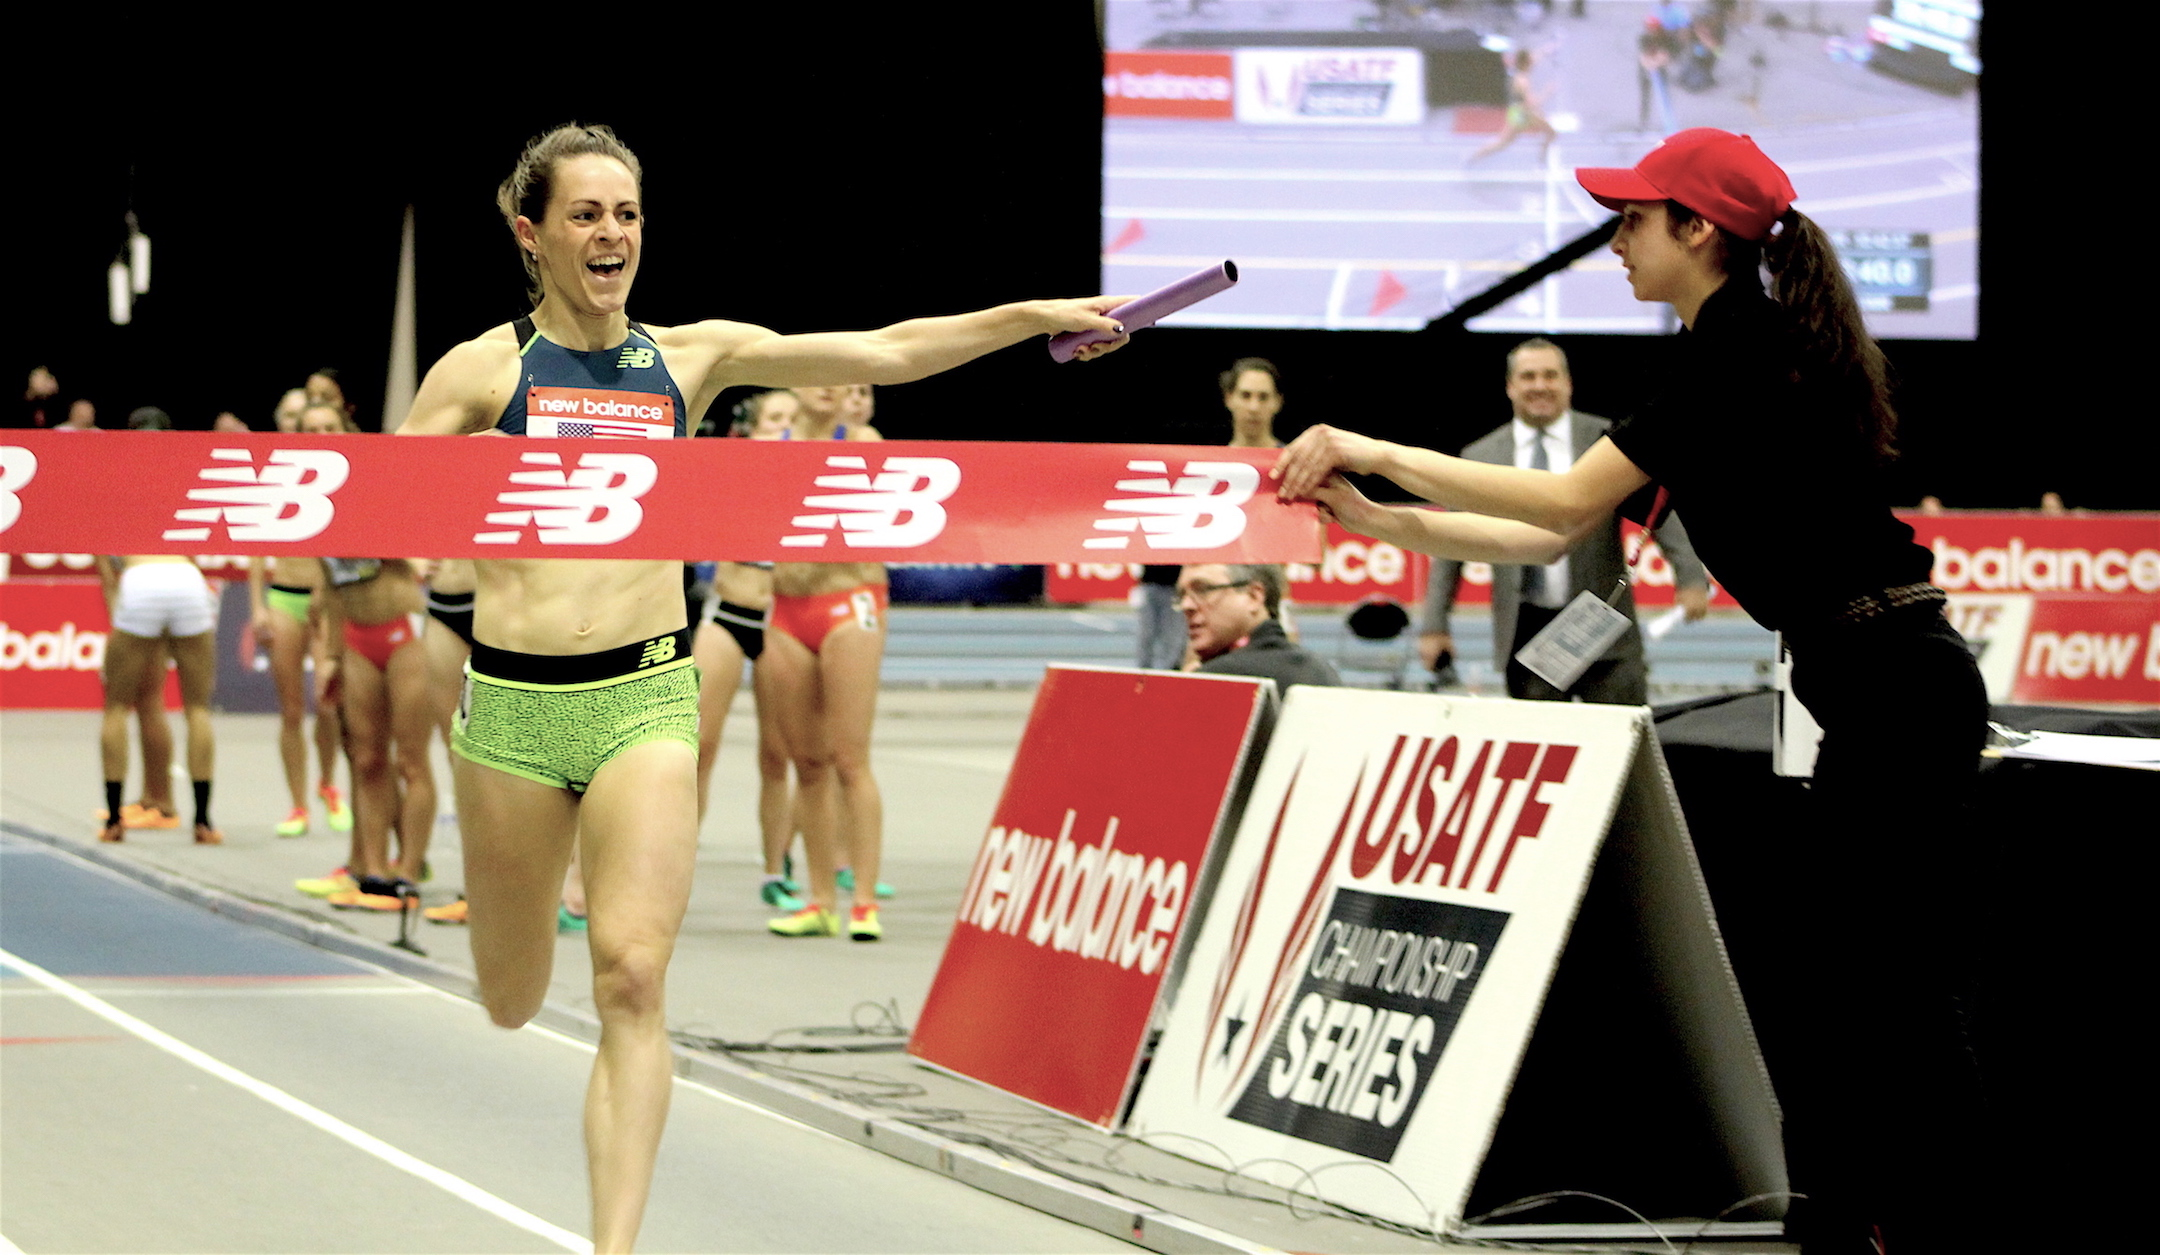 Jenny Simpson completes the mile portion of the distance medley relay for a world record during the New Balance Indoor Grand Prix at Reggie Lewis Track Center on Jan. 28, 2017.